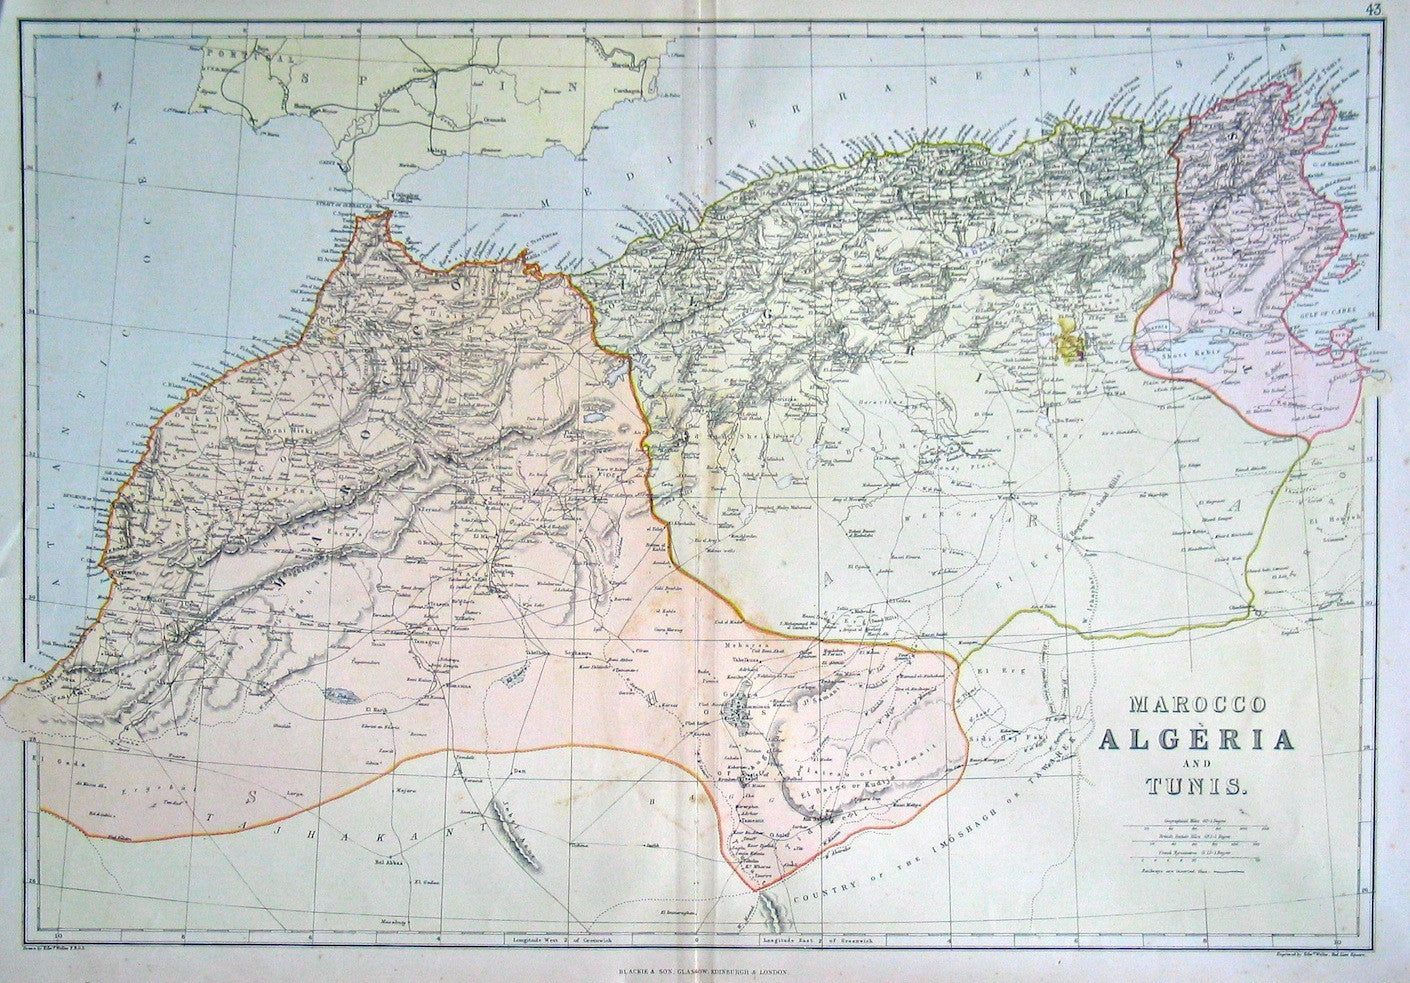 Marocco(sic), Algeria and Tunis